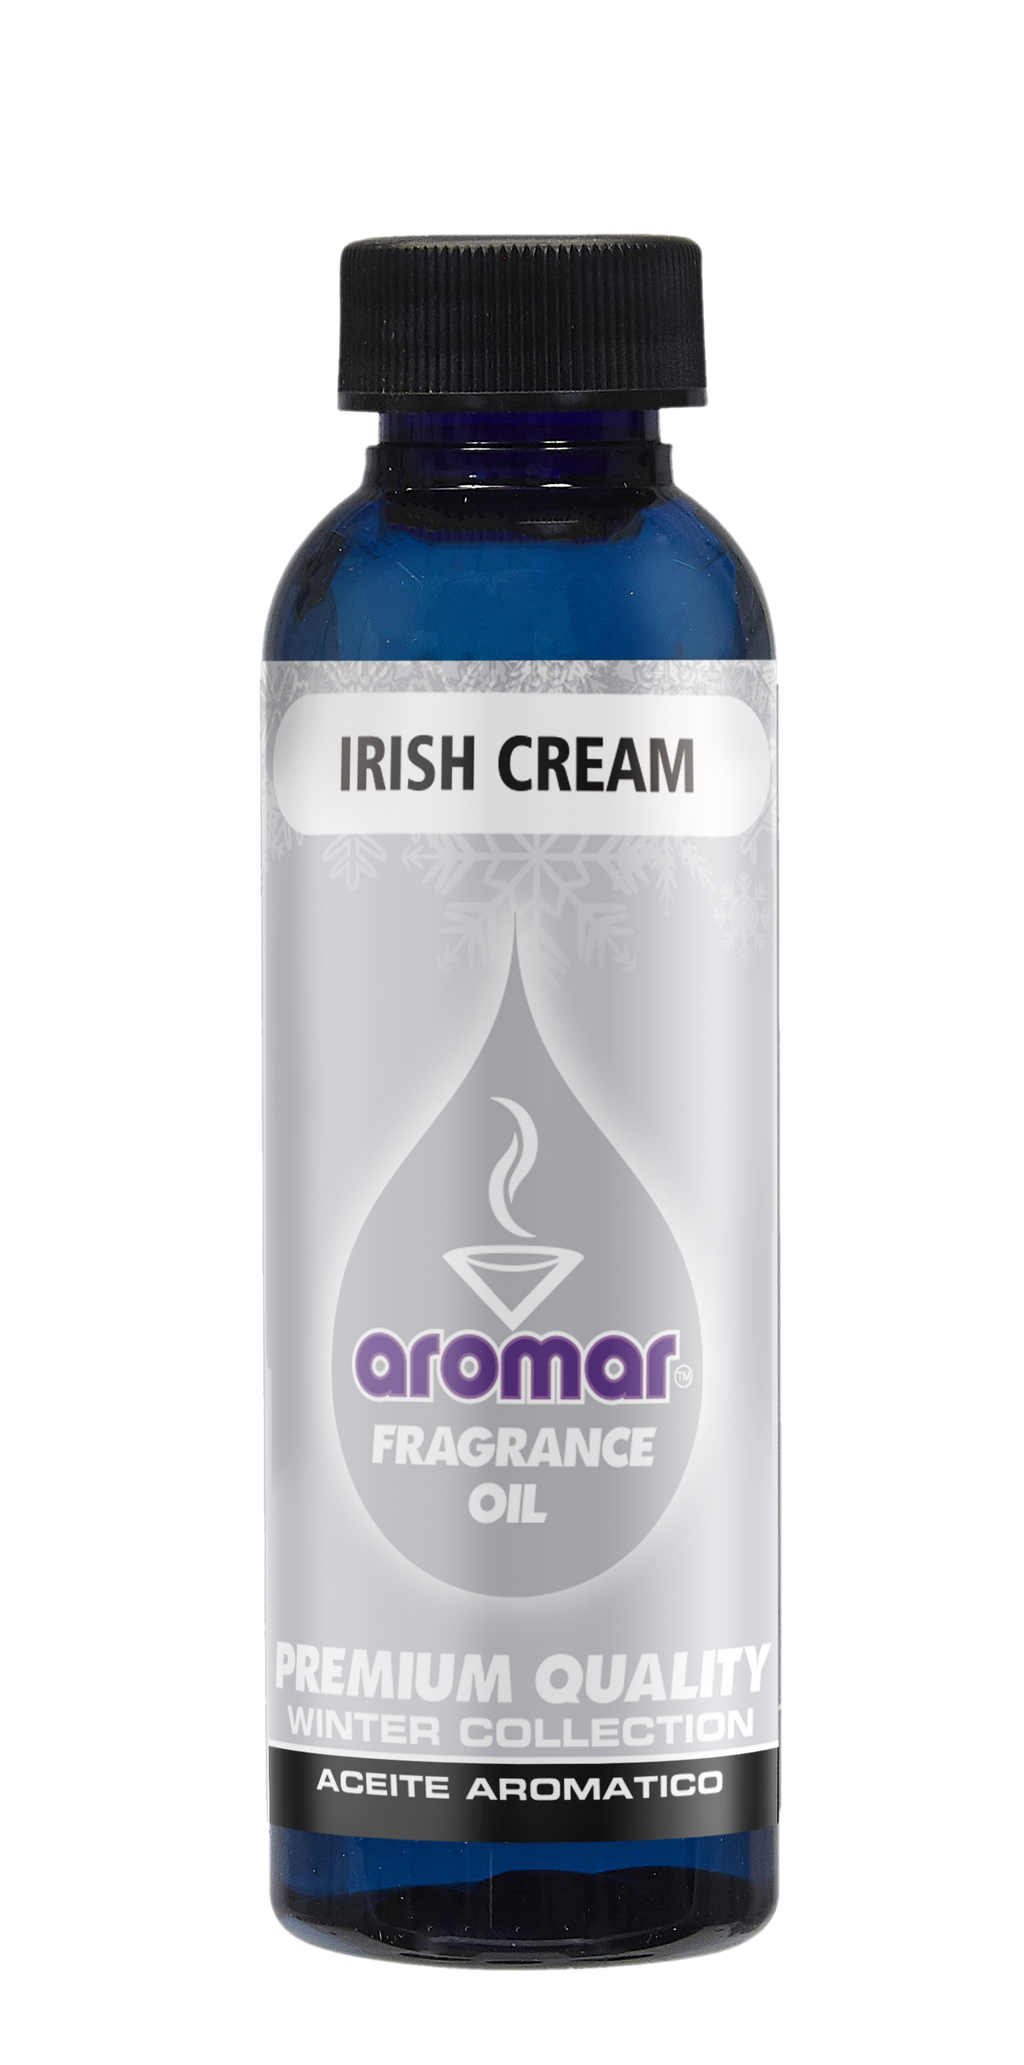 Irish Cream Fragrance Oil